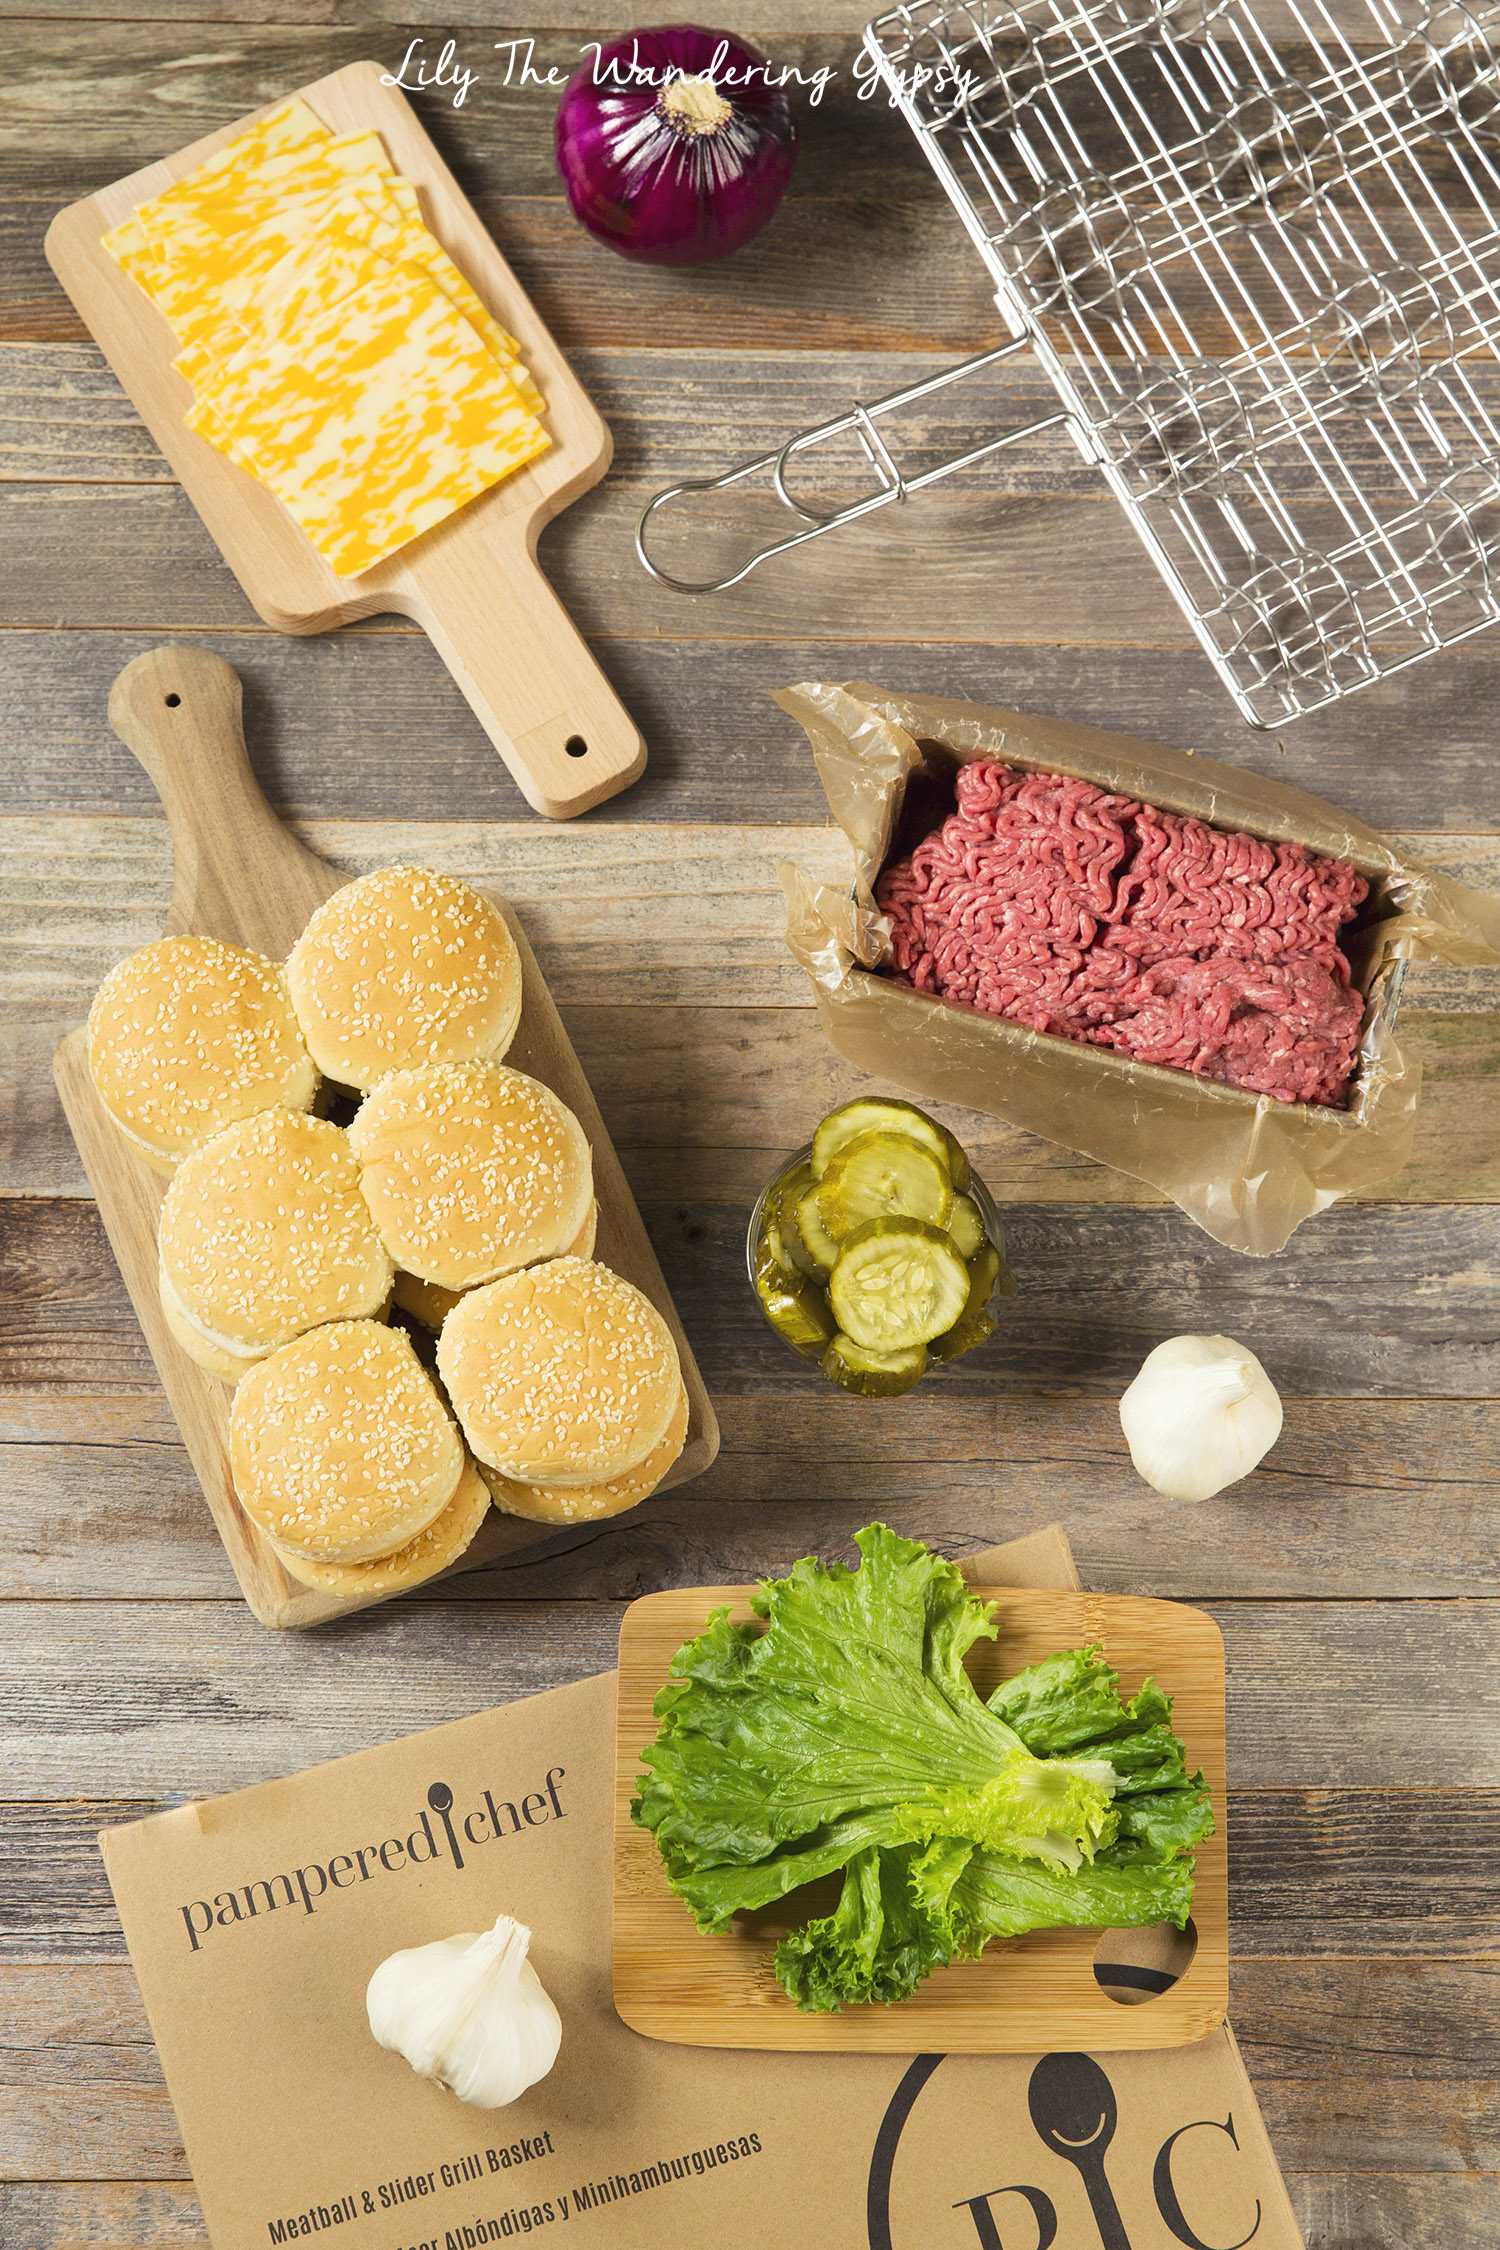 Making Slider Burgers with Pampered Chef